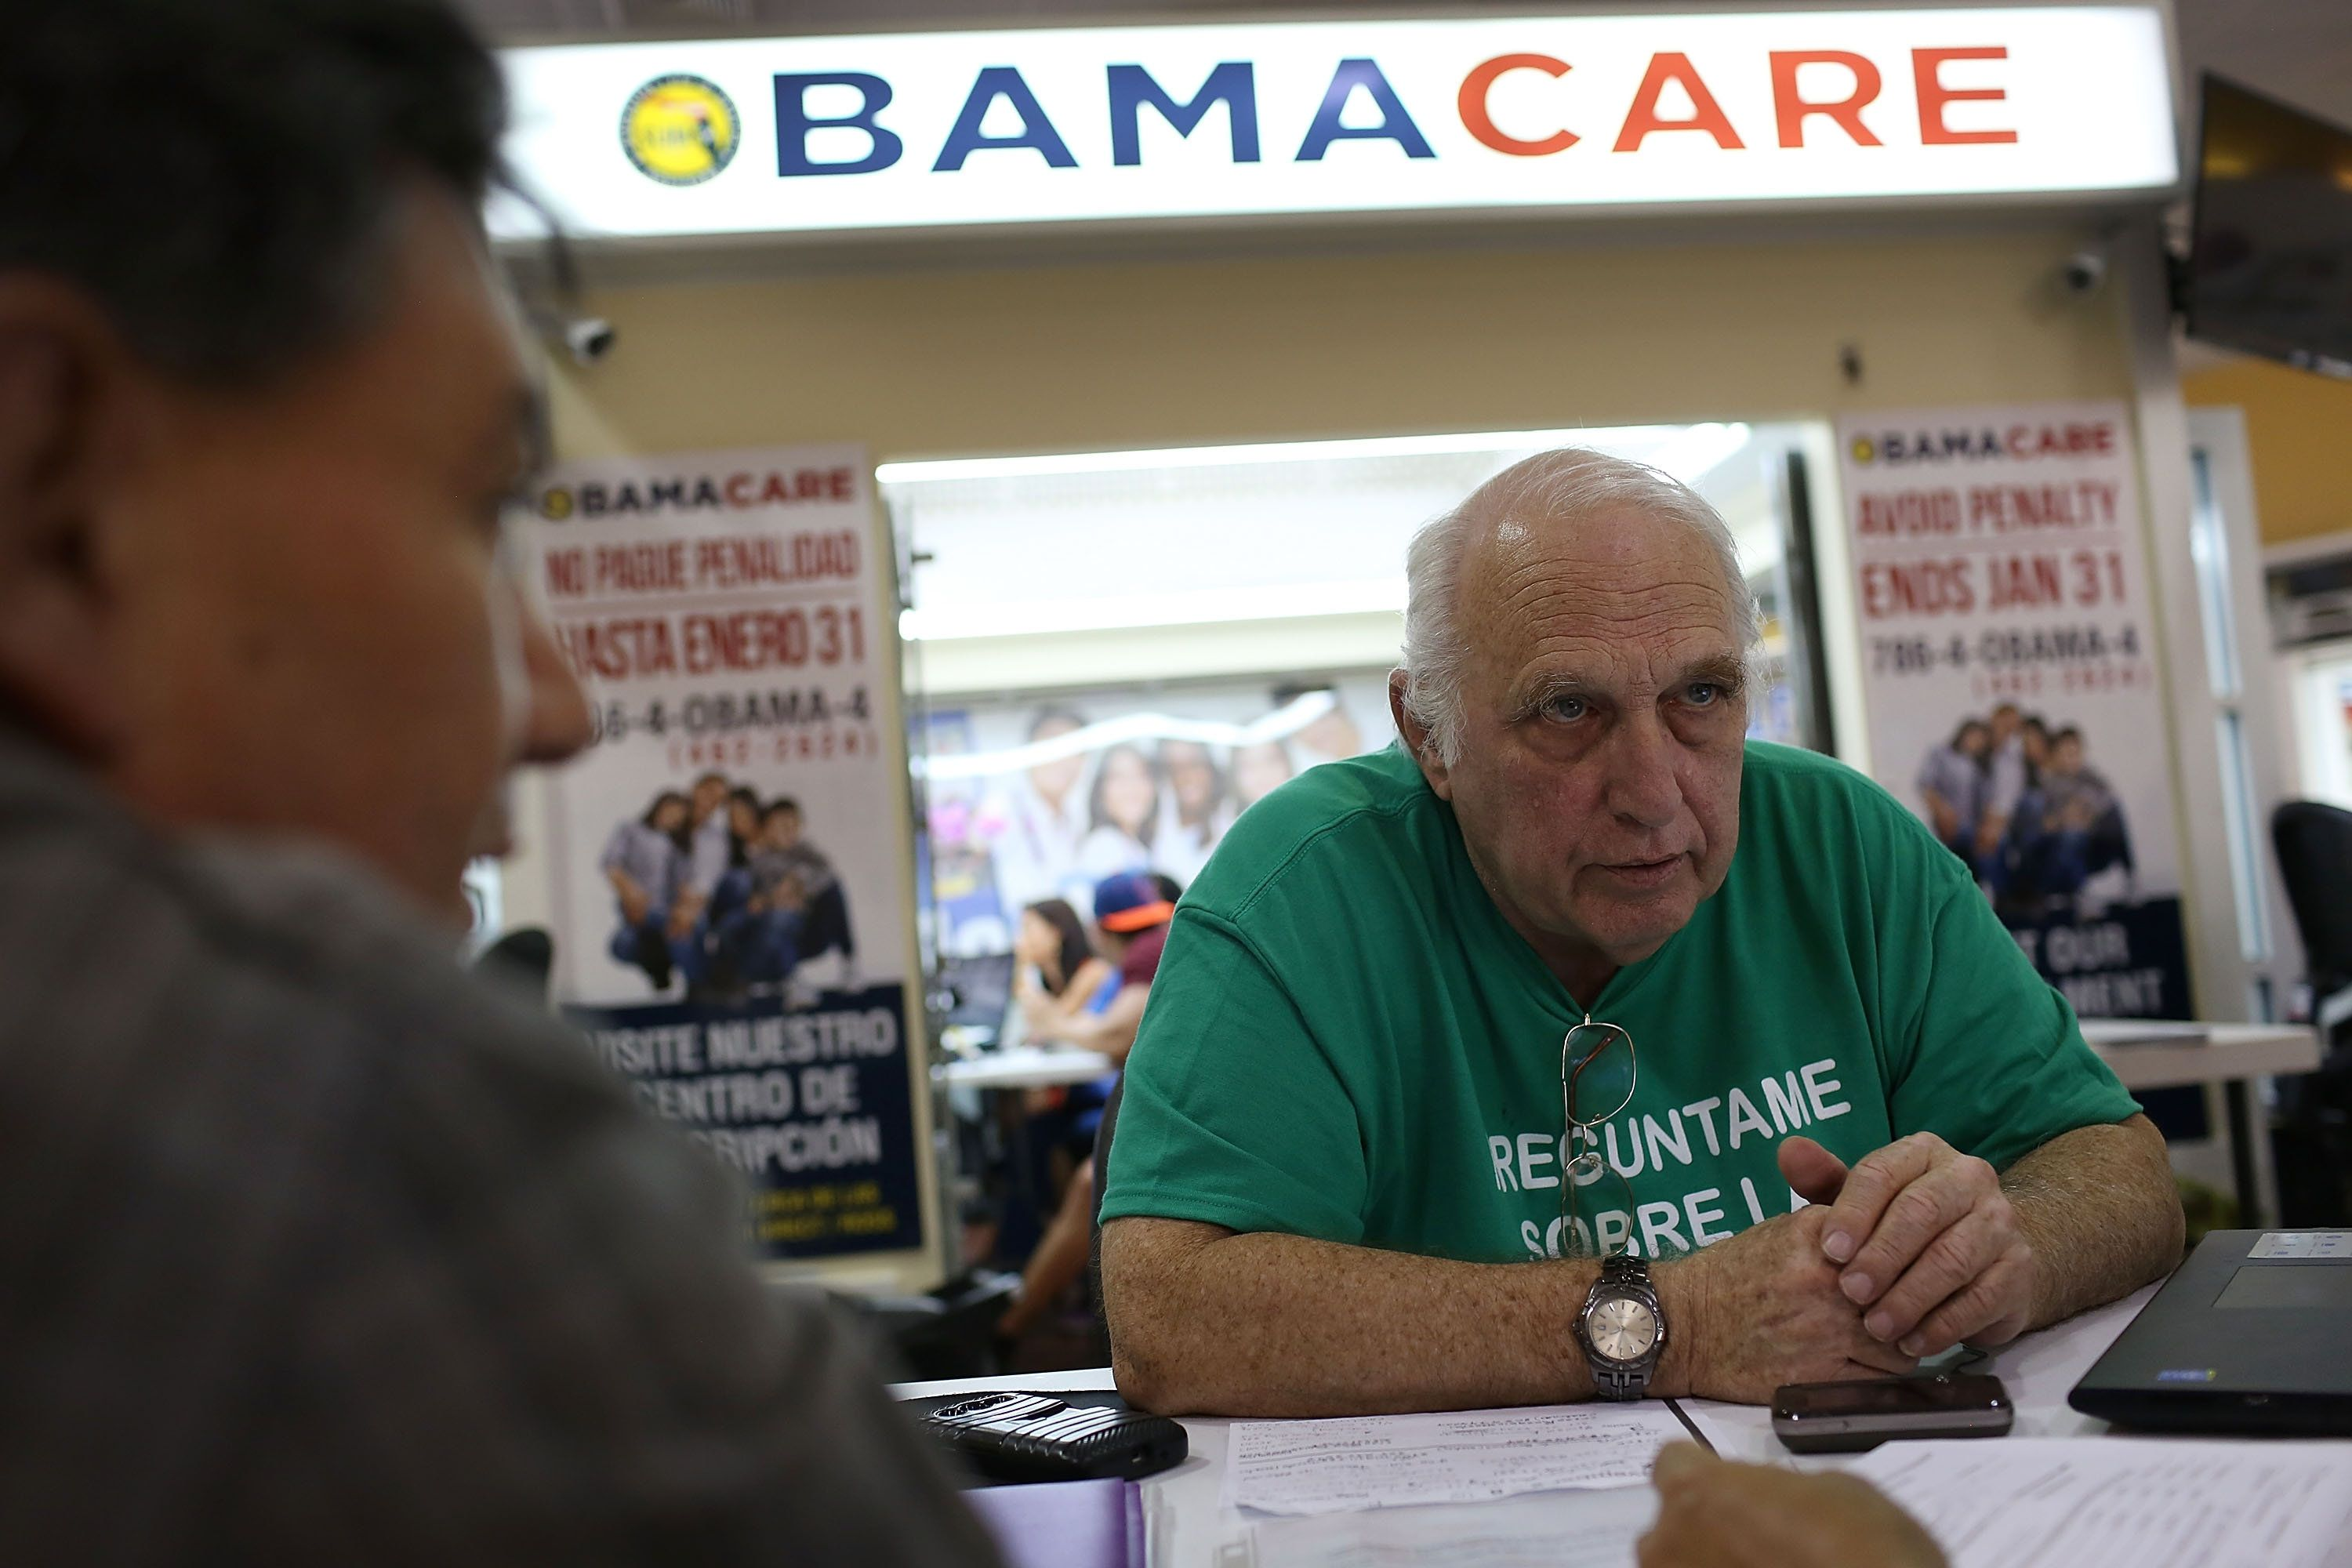 MIAMI, FL - NOVEMBER 02: Antonio Galis, an insurance agent from Sunshine Life and Health Advisors, discusses with a client plans available in the third year of the Affordable Care Act at a store setup in the Mall of the Americas on November 2, 2015 in Miami, Florida. Open Enrollment began yesterday for people to sign up for a 2016 insurance plan through the Affordable Care Act.  (Photo by Joe Raedle/Getty Images)